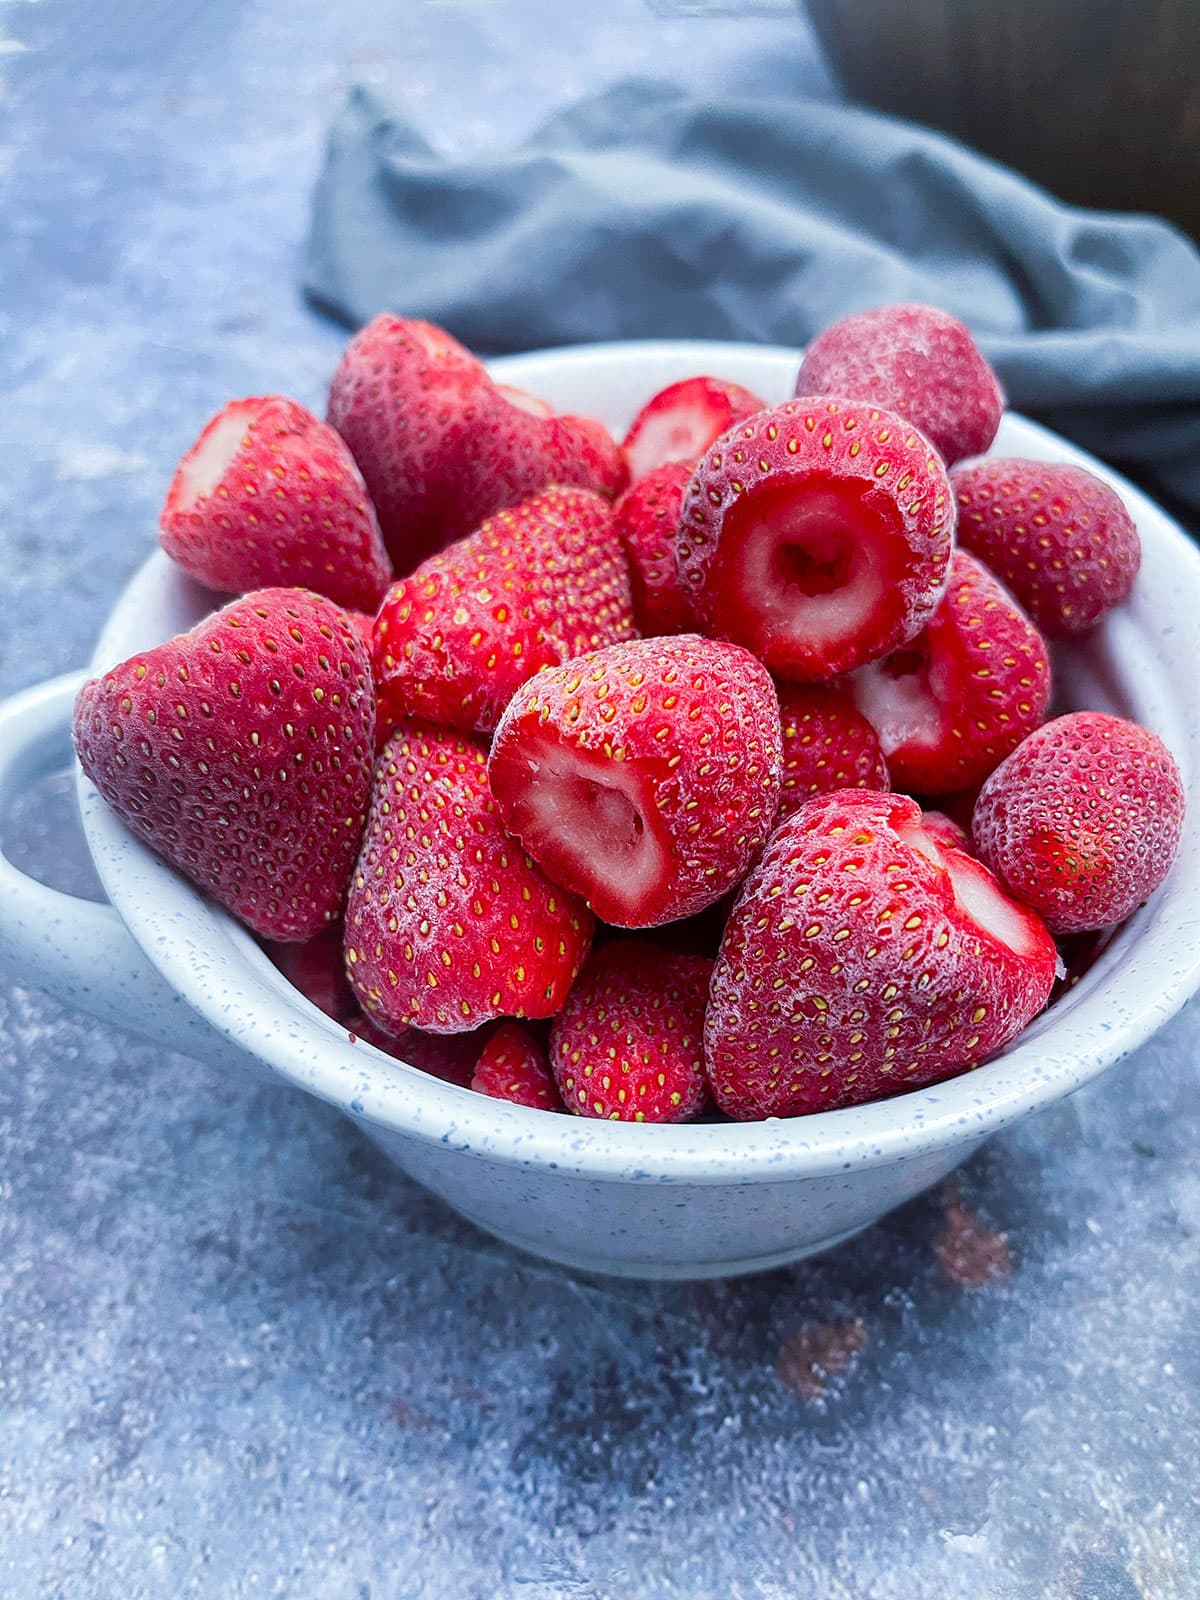 How To Freeze Strawberries